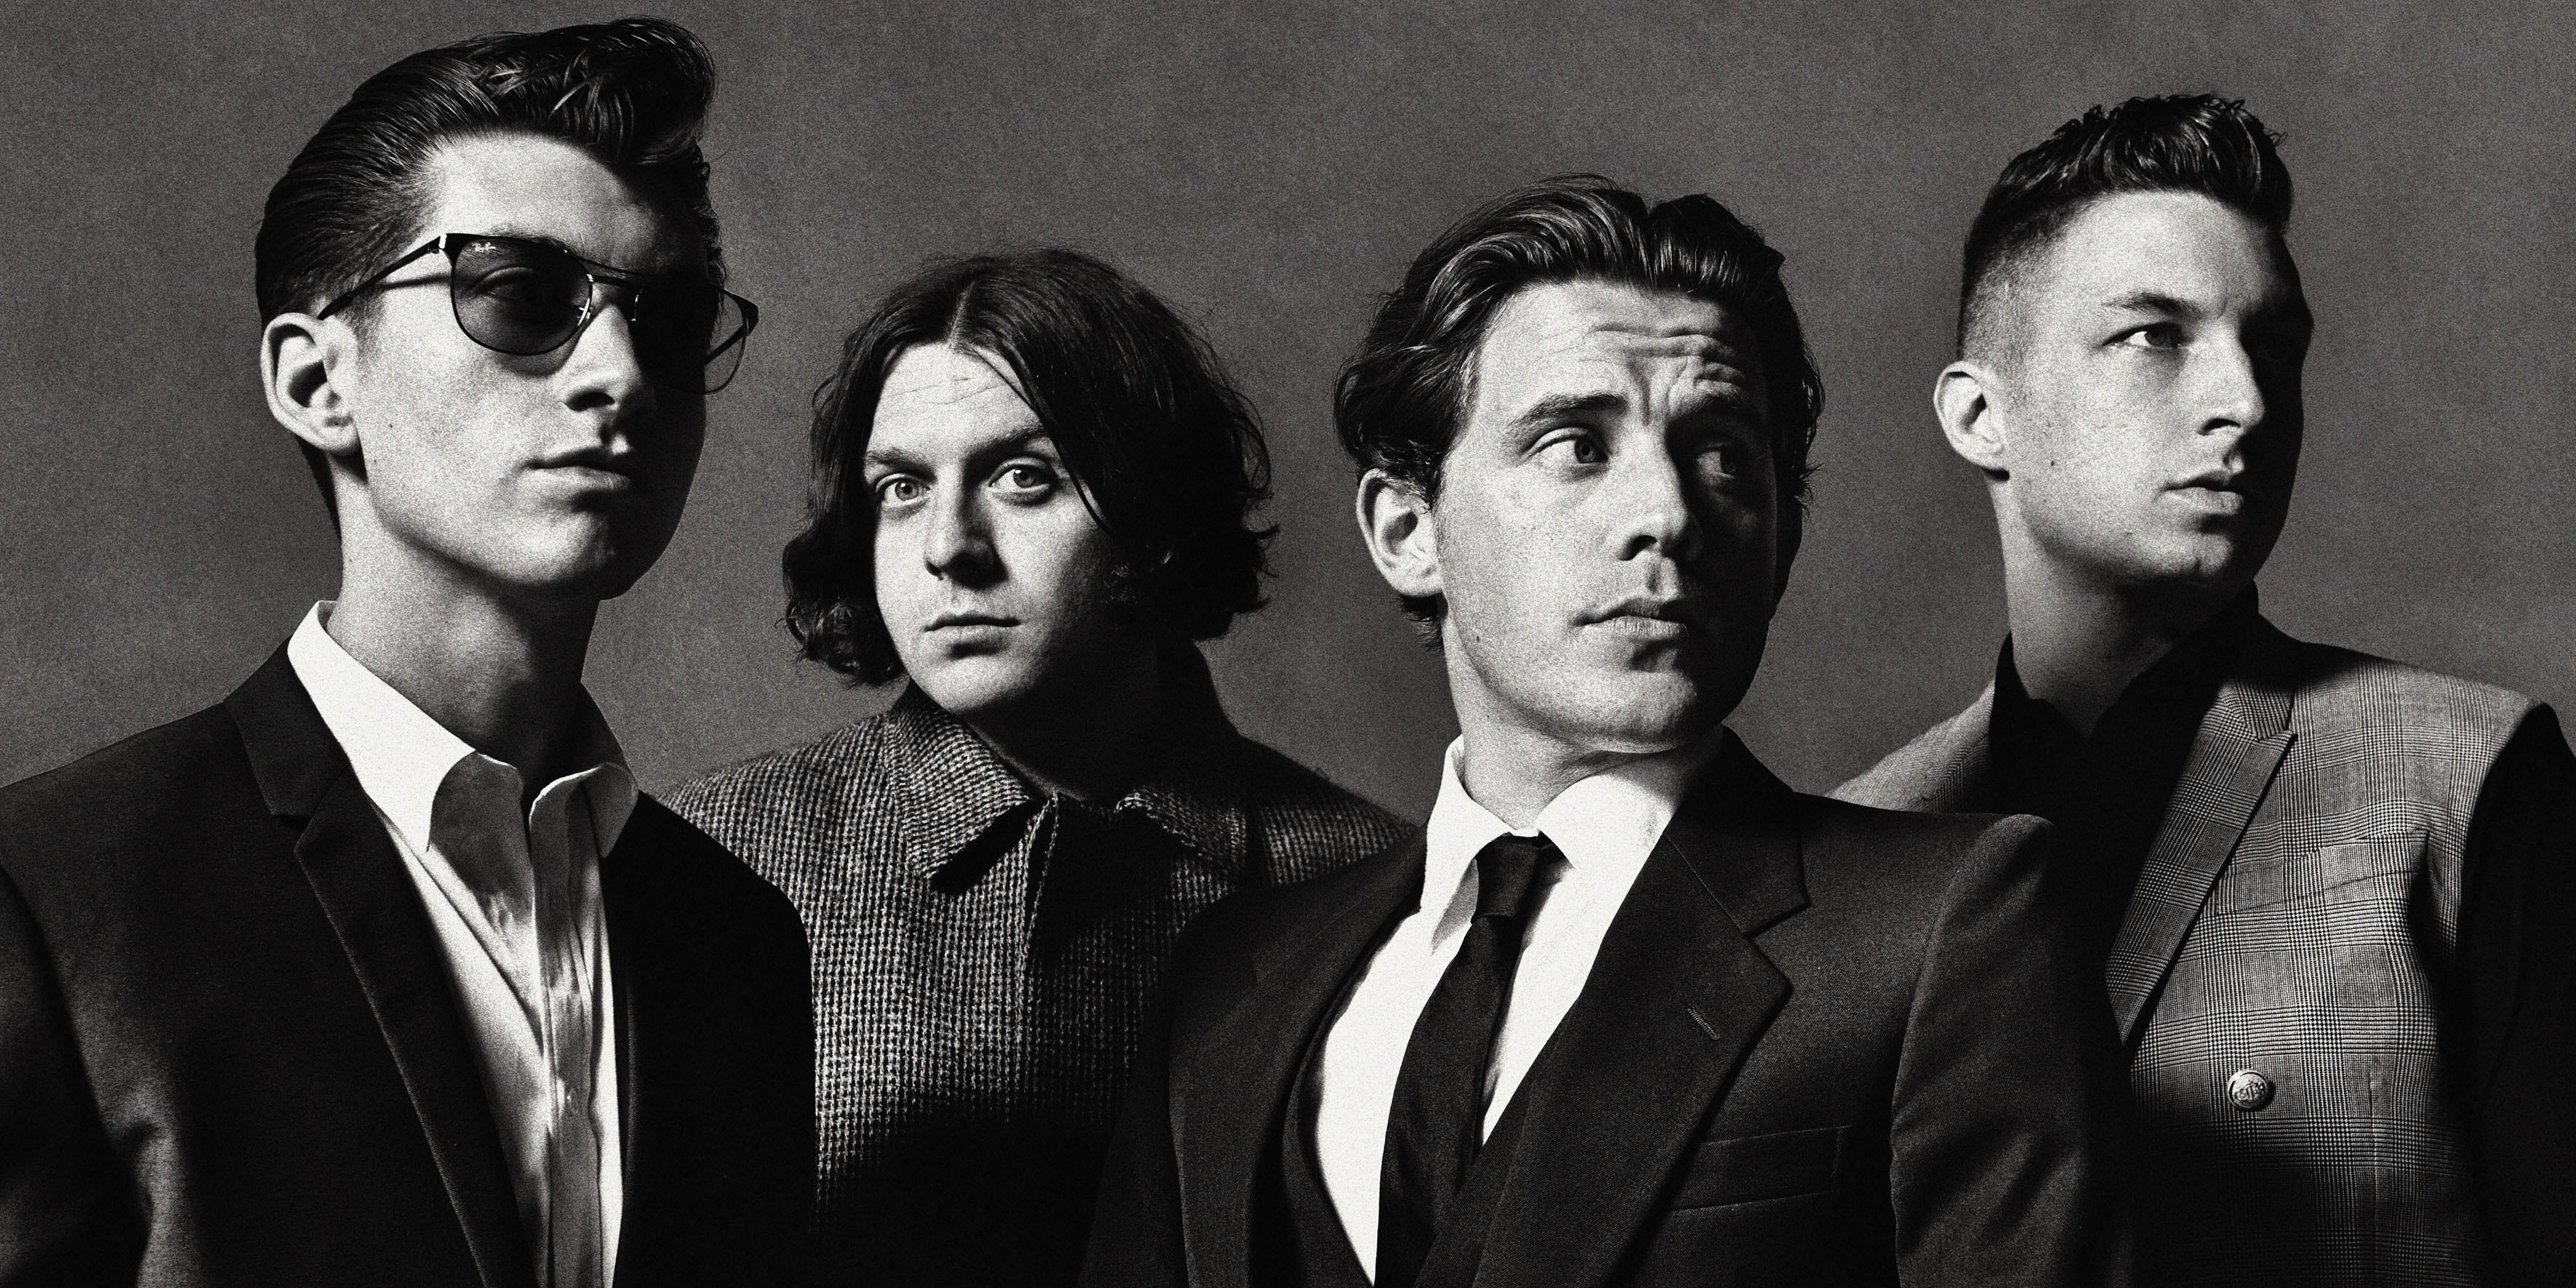 Arctic Monkeys announce new album Tranquility Base Hotel & Casino out May 11